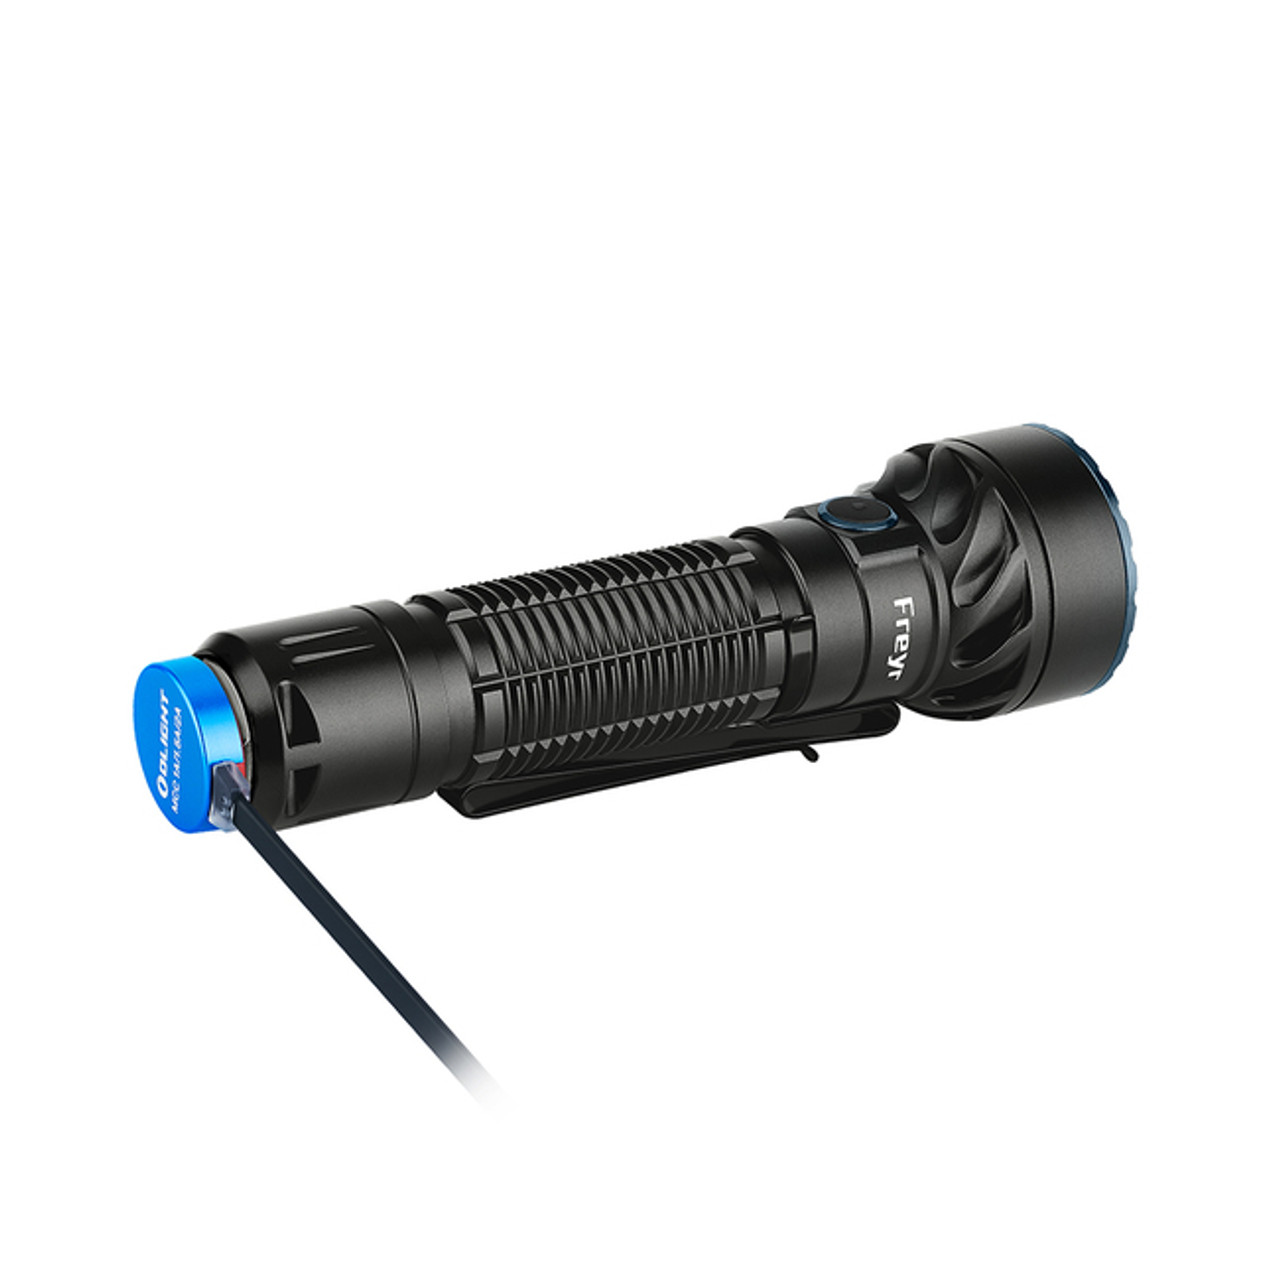 Olight Freyr Black (Red, Green, and Blue Lights)